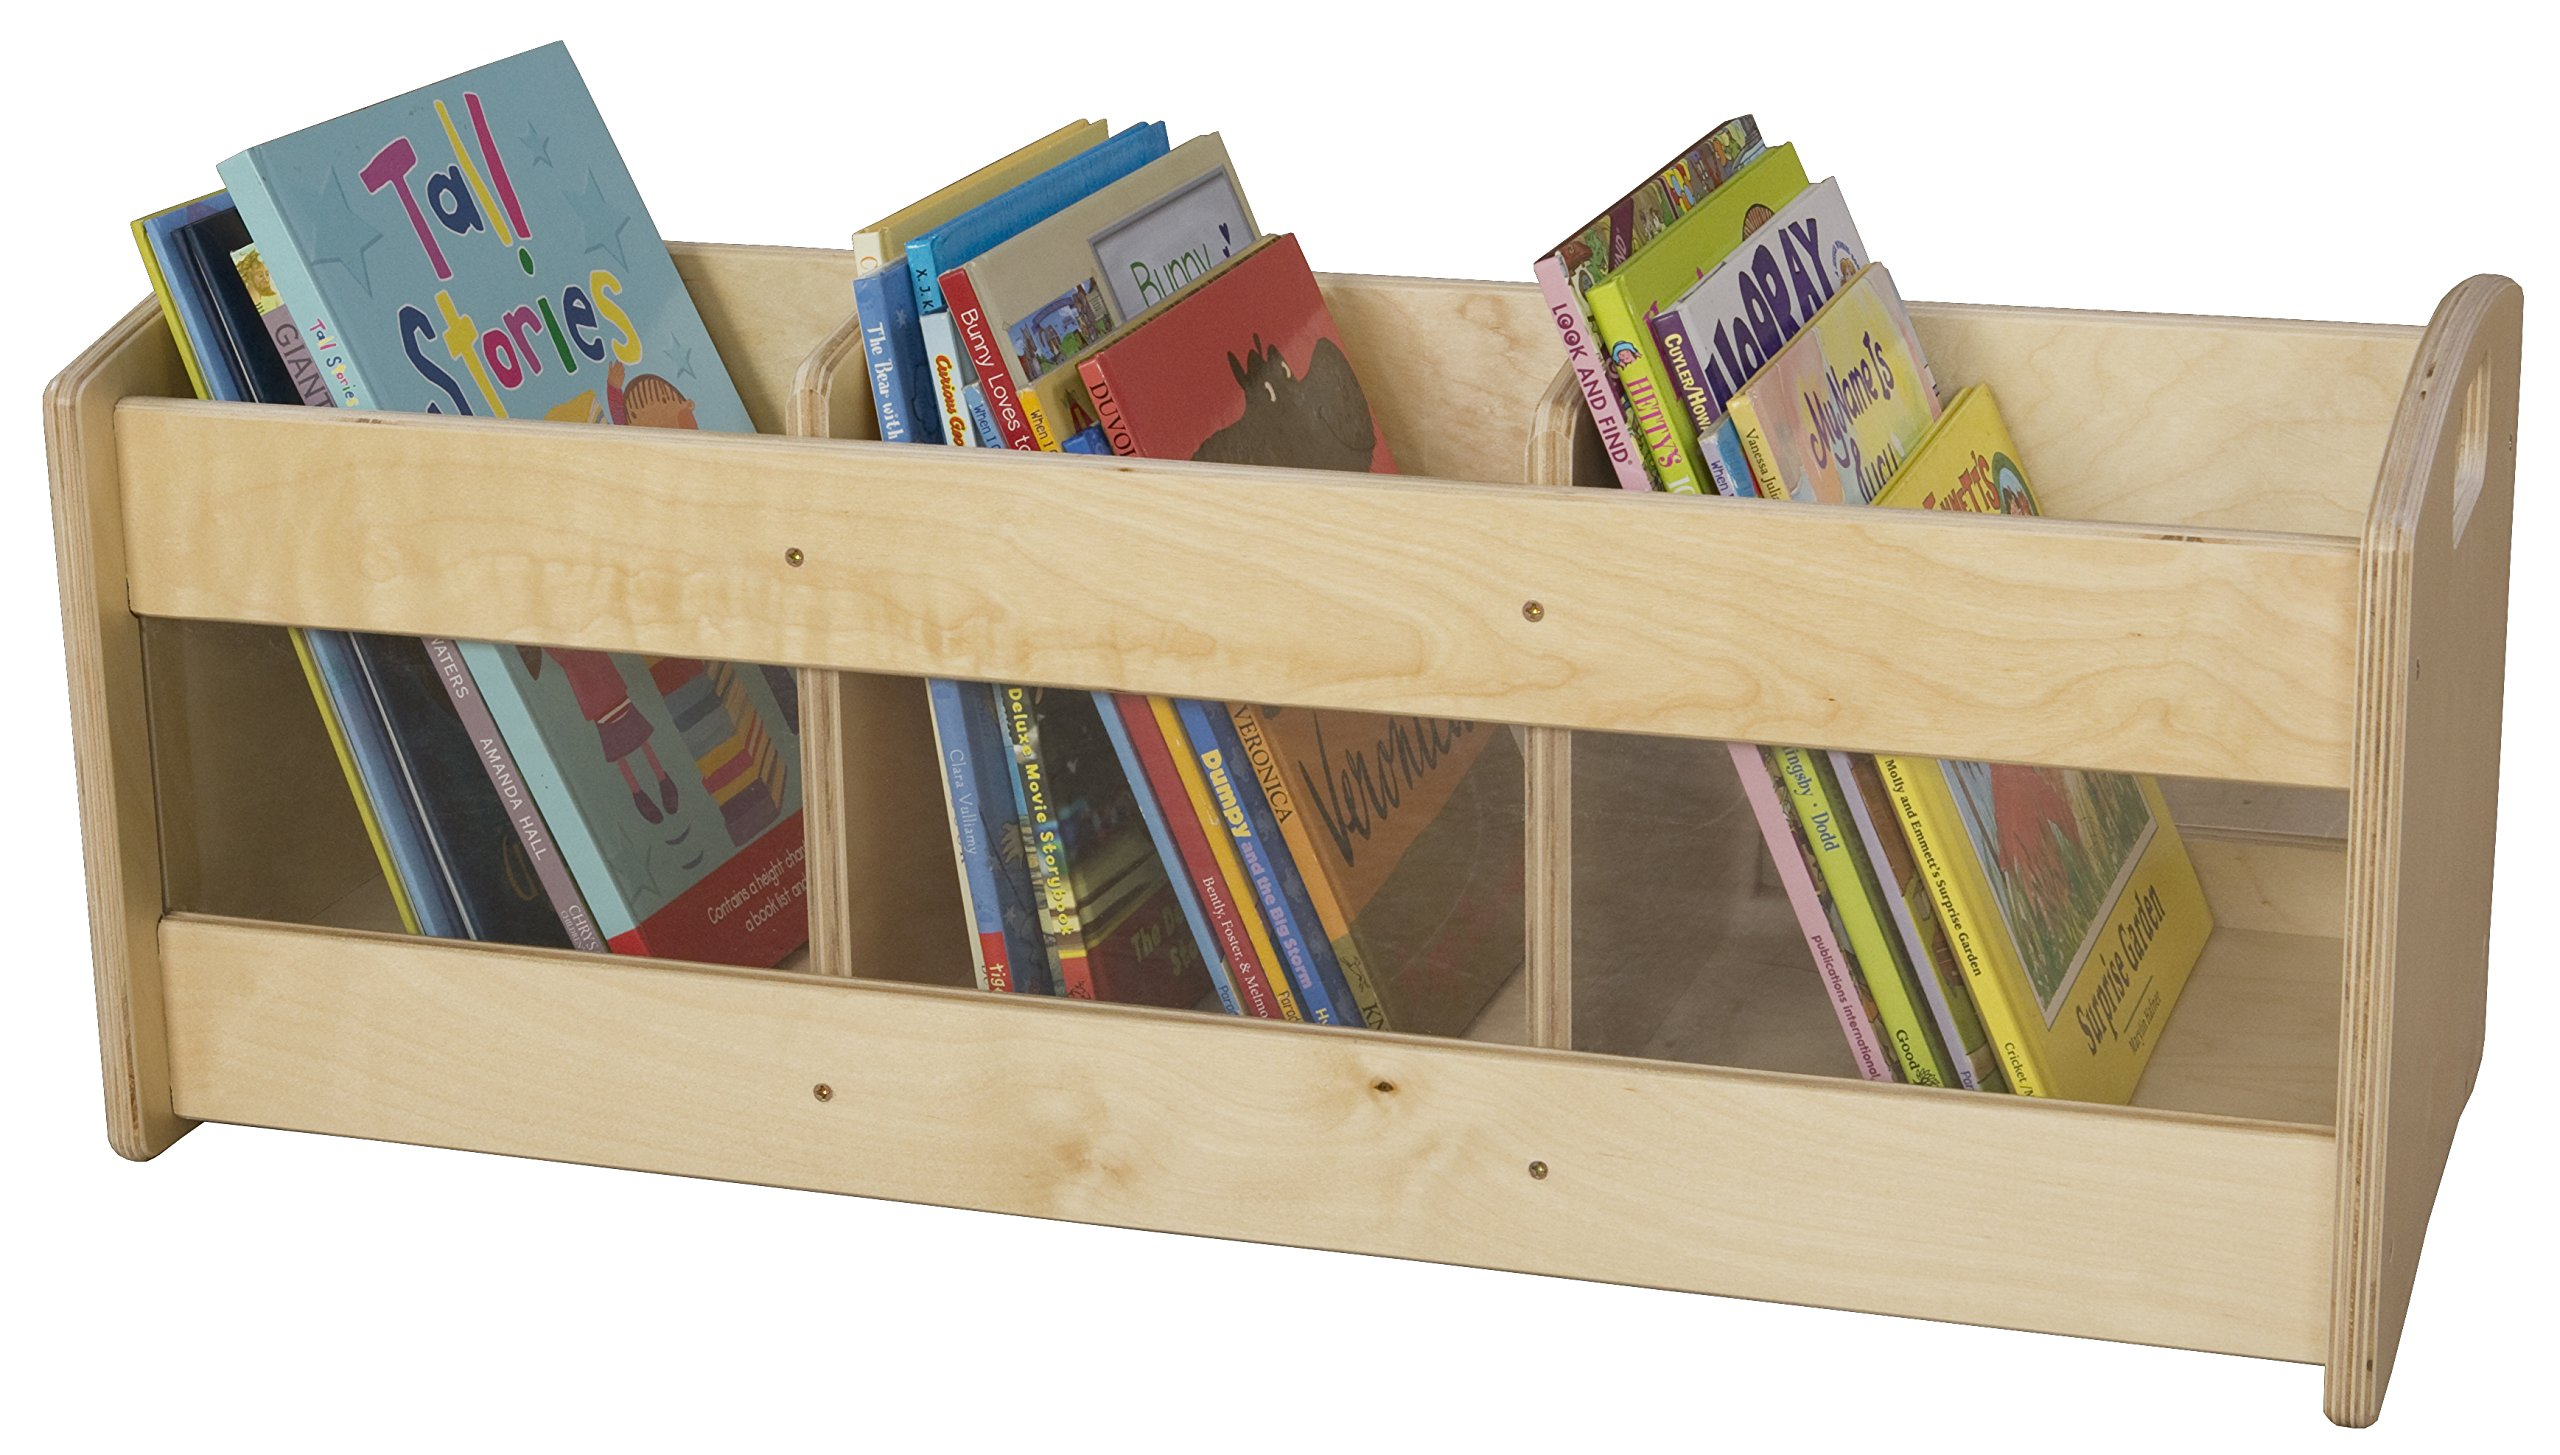 Wood Designs 990644 Toddler Book Brower, 12'' Depth